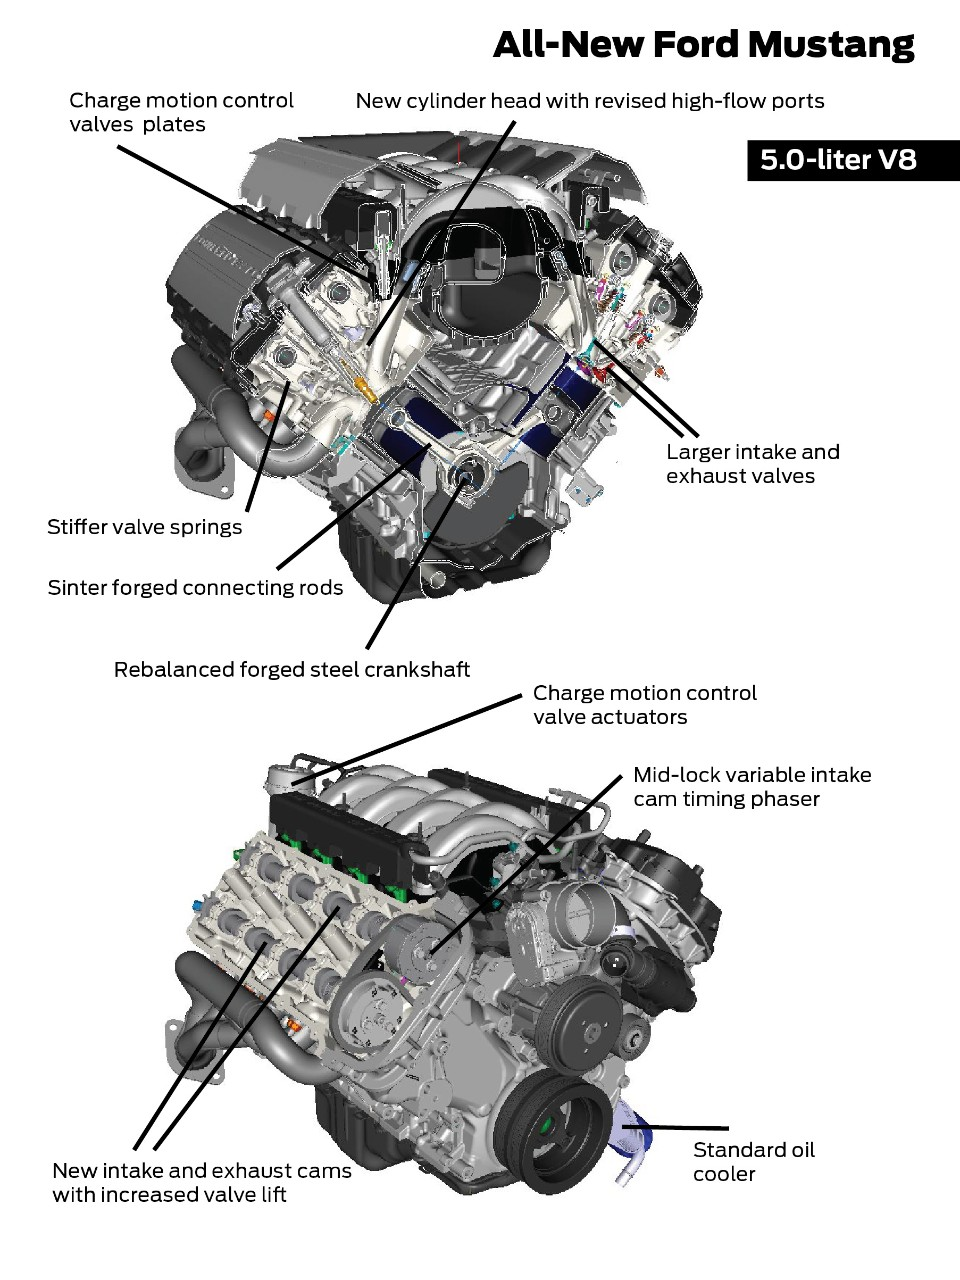 2015 Mustang Engine Specs: 5.0L V8 Coyote - 2015 Mustang Engine Specs: 5.0